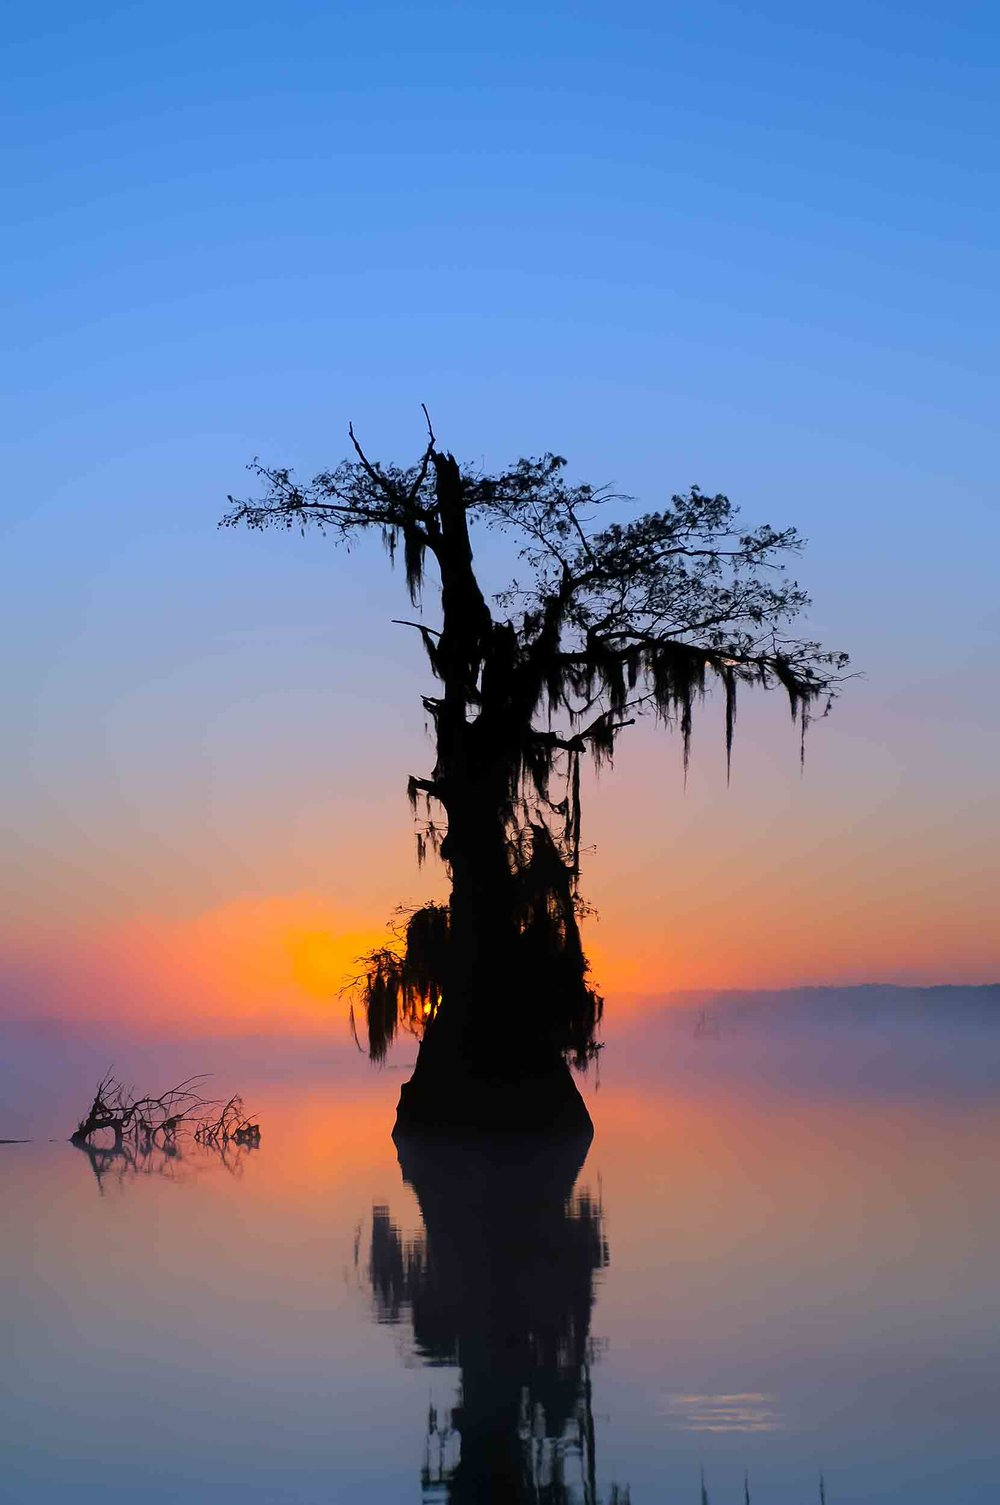 Cypress Tree at Sunrise - Lake Deautrive